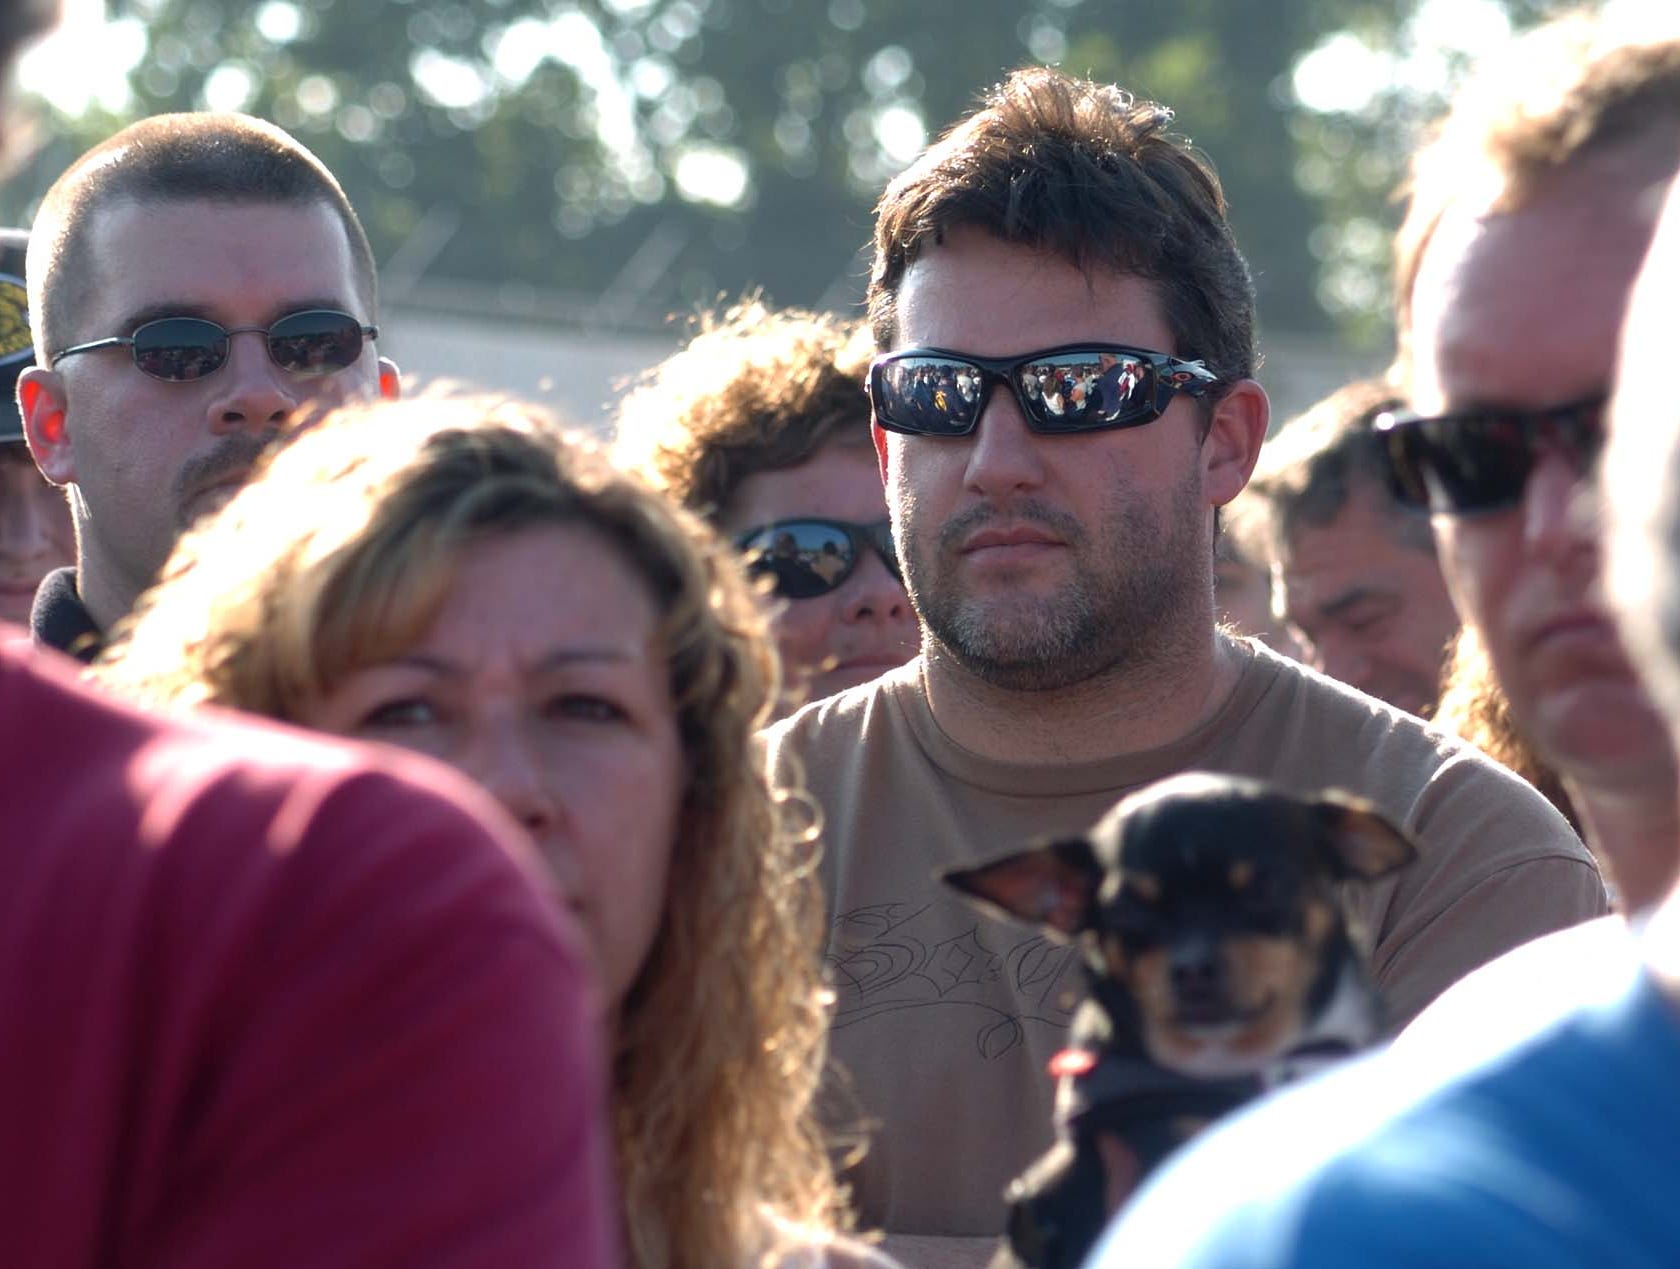 NASCAR star Tony Stewart was just another driver Tuesday at Williams Grove Speedway in Mechanicsburg in 2008 during the drivers' meeting before the dirt-track race to benefit the Kasey Kahne Foundation.